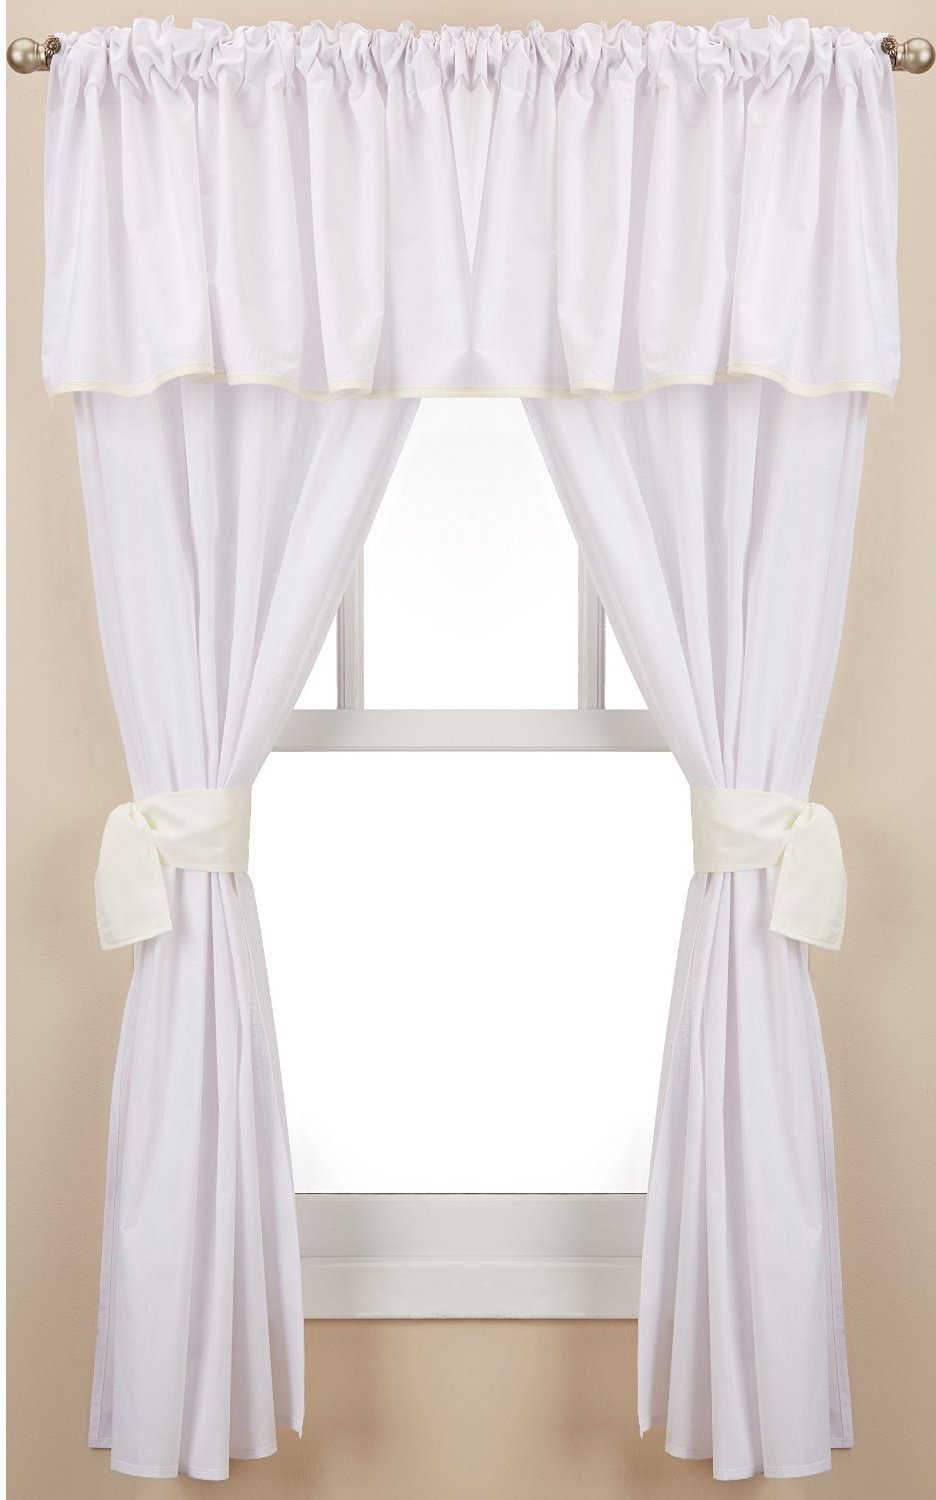 Baby Doll Bedding Forever Mine Junior 5 Piece Window Valance Curtain Set, Lavender 560valc5-lav